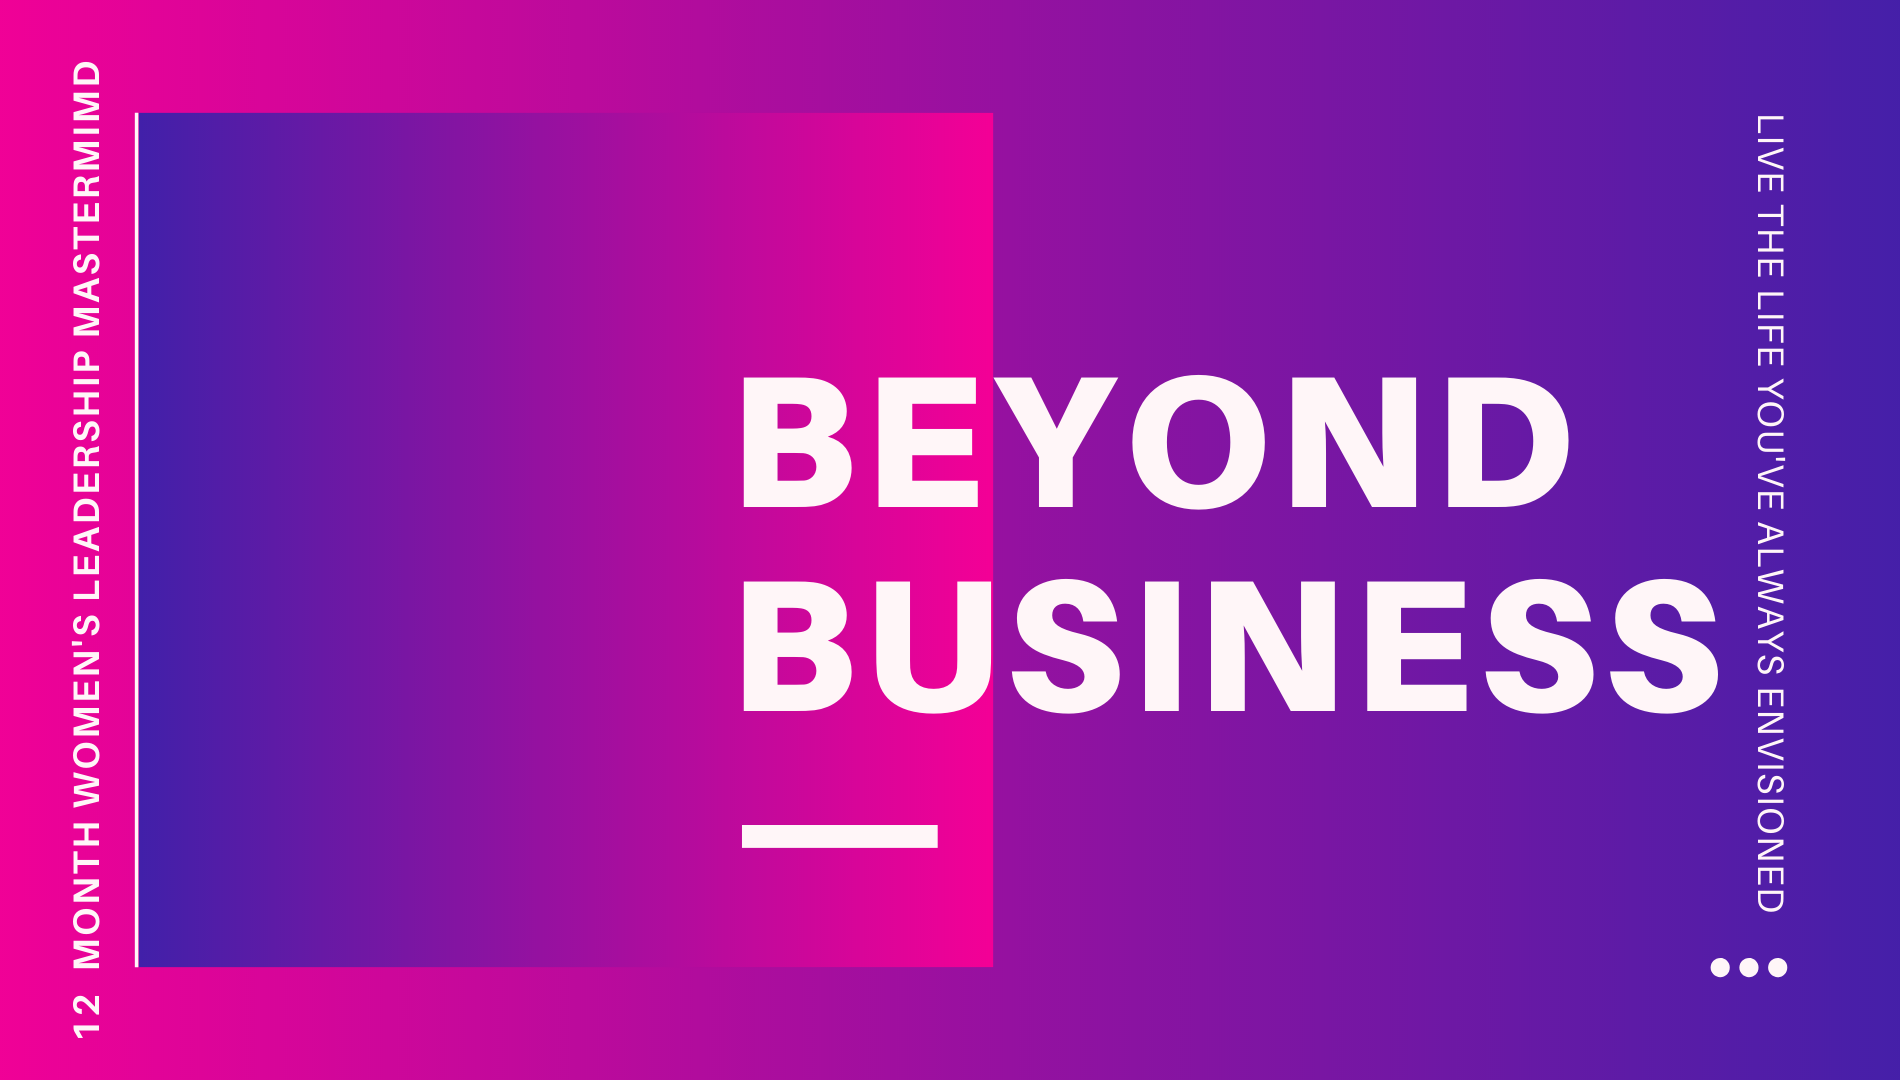 Go From Vision to Victory! Get Your Future Into Focus: Beyond Business